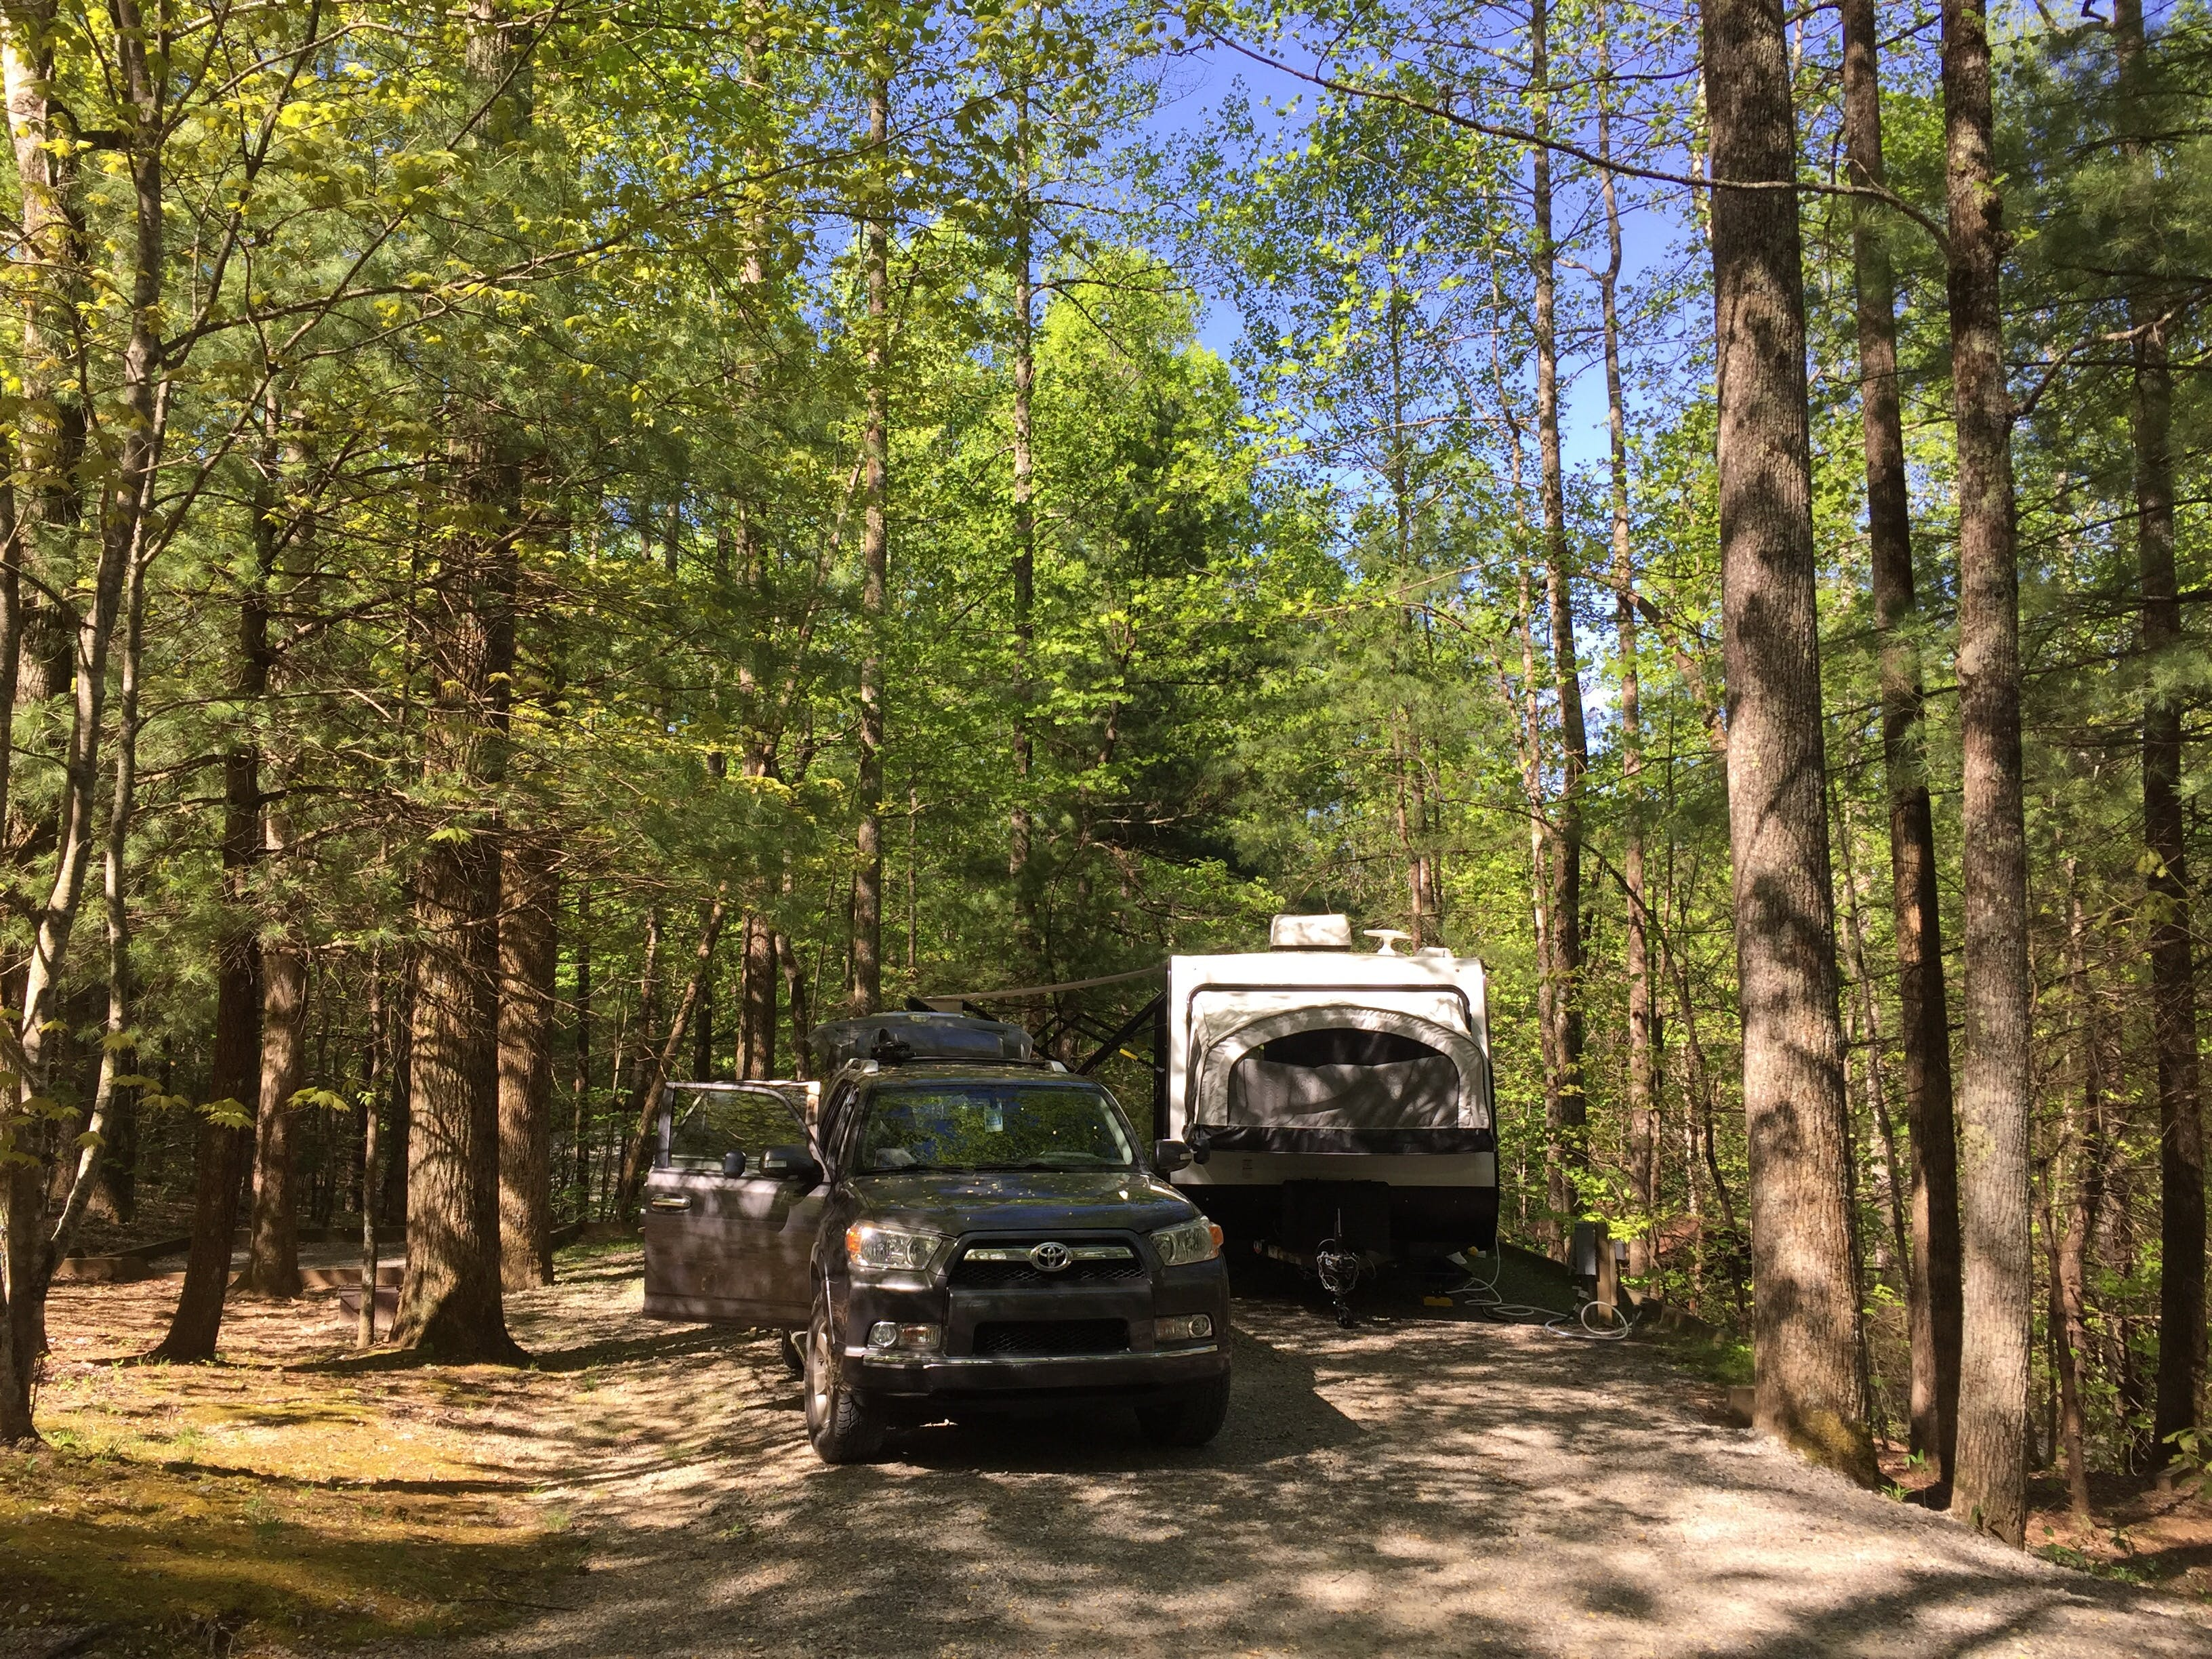 black forest family camping resort, nc | the dyrt